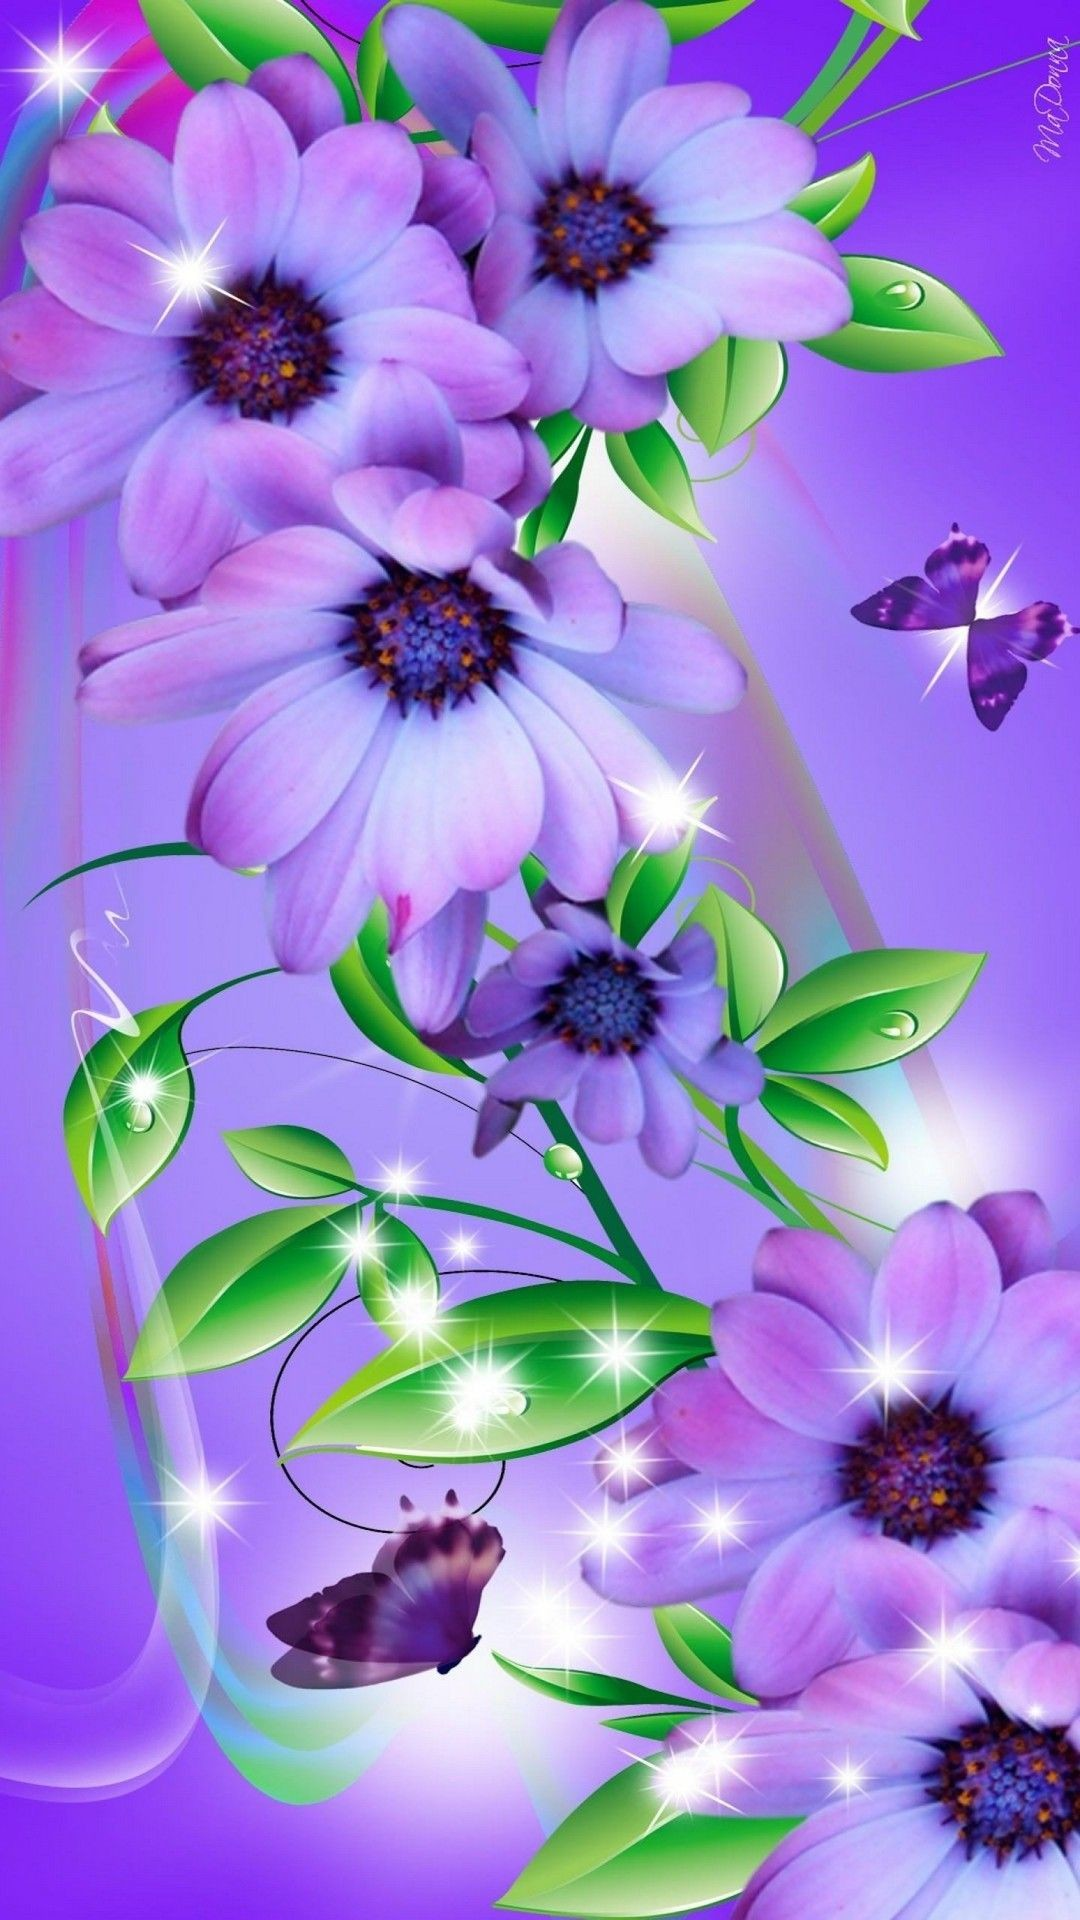 Spring Butterfly Wallpaper Posted By Michelle Mercado